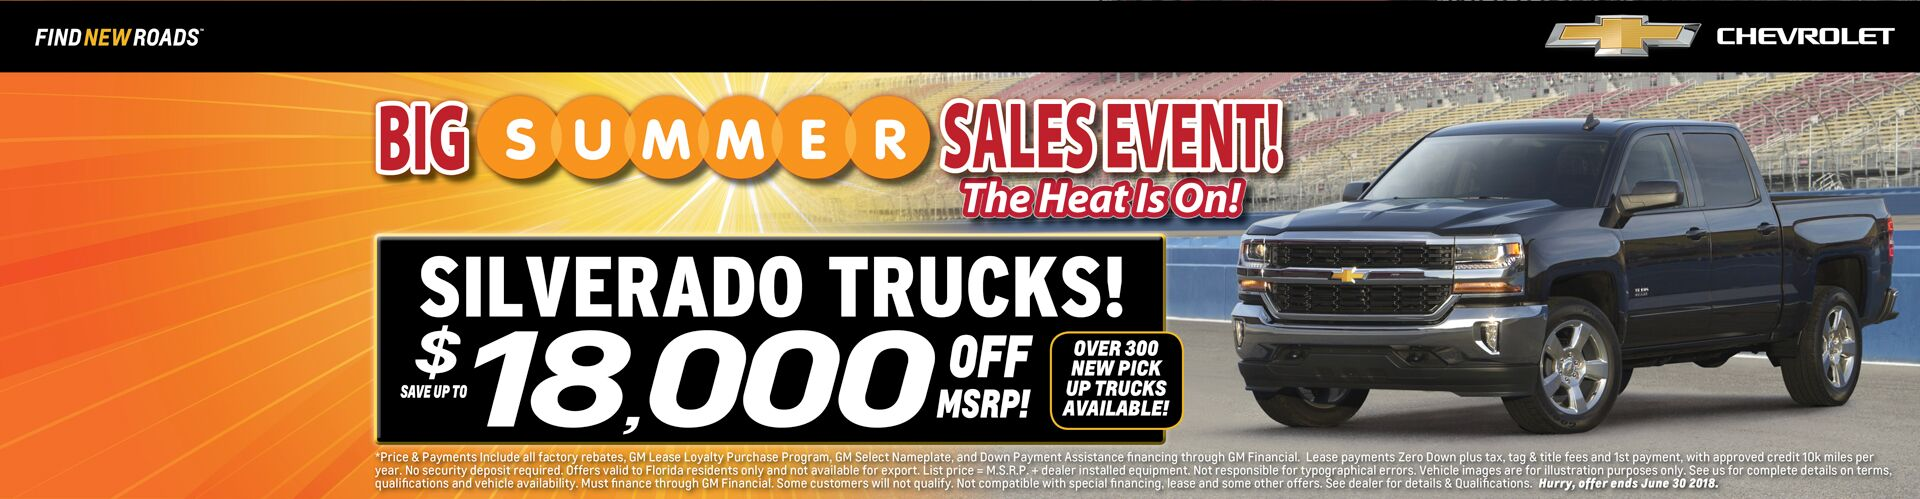 New Chevrolet Silverado Trucks On Sale Now! Over 300 Available!